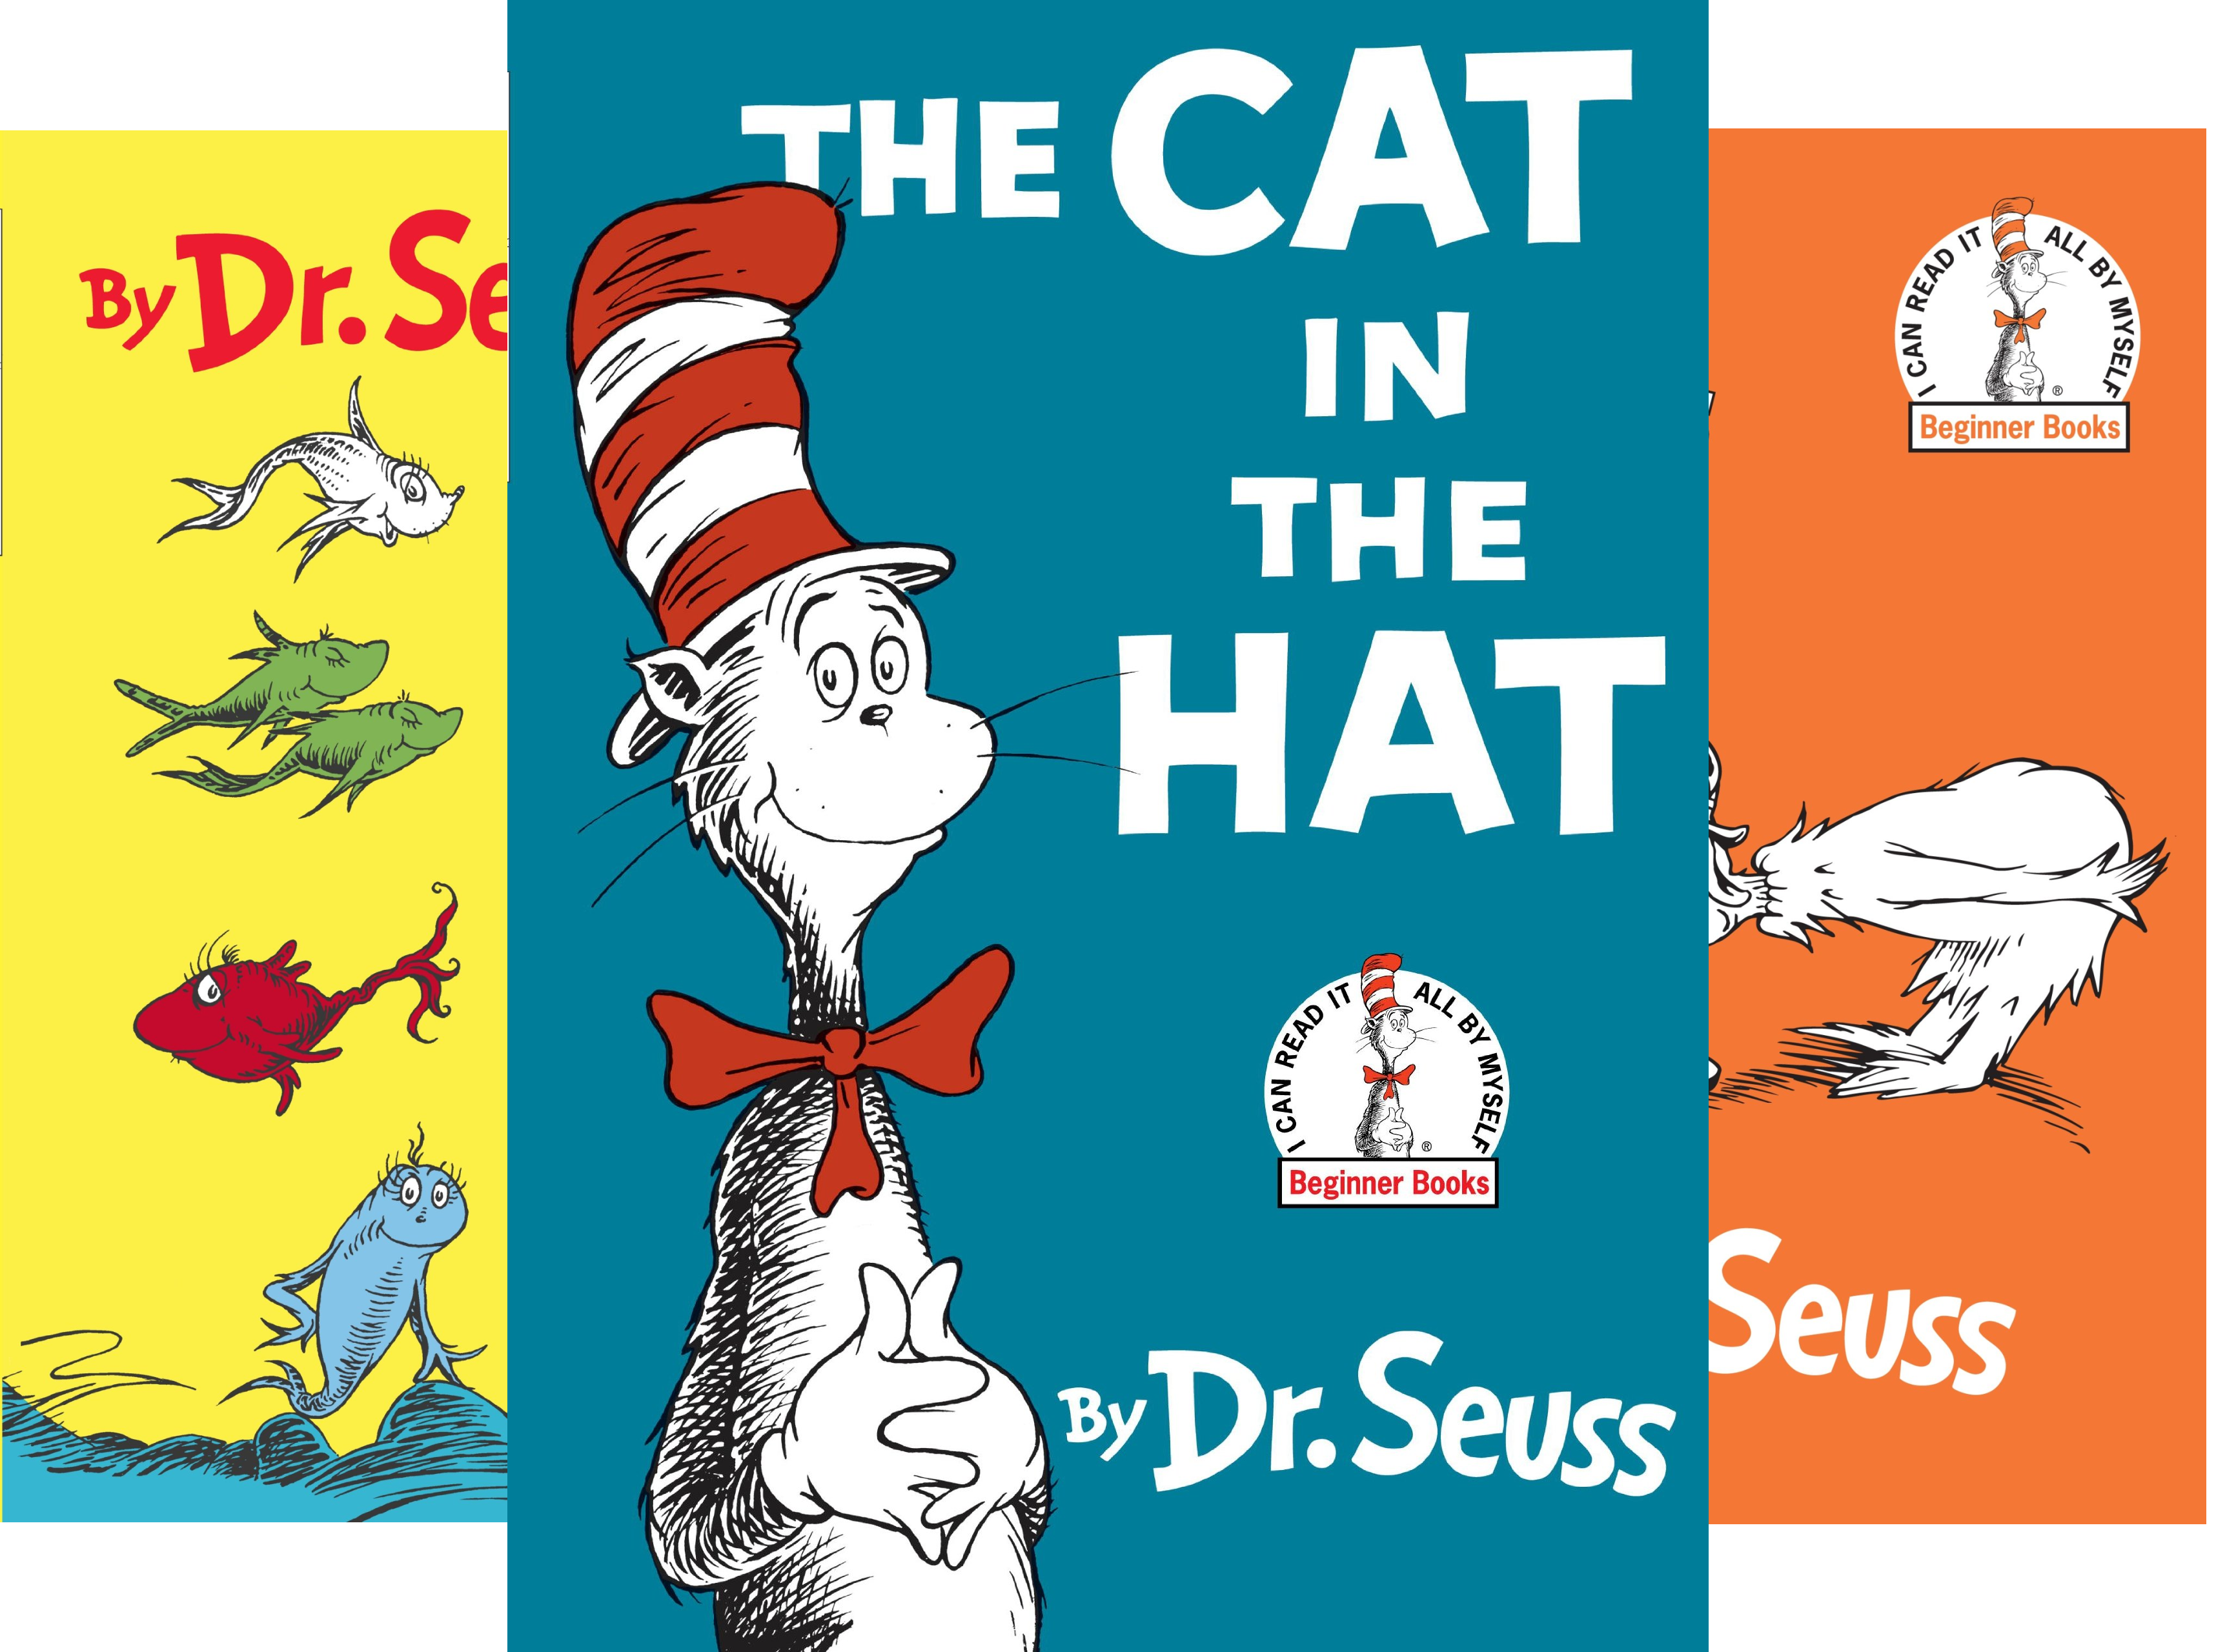 - Dr. Seuss's Beginner Book Collection (Cat in the Hat, One Fish Two Fish, Green Eggs and Ham, Hop on Pop, Fox in Socks)